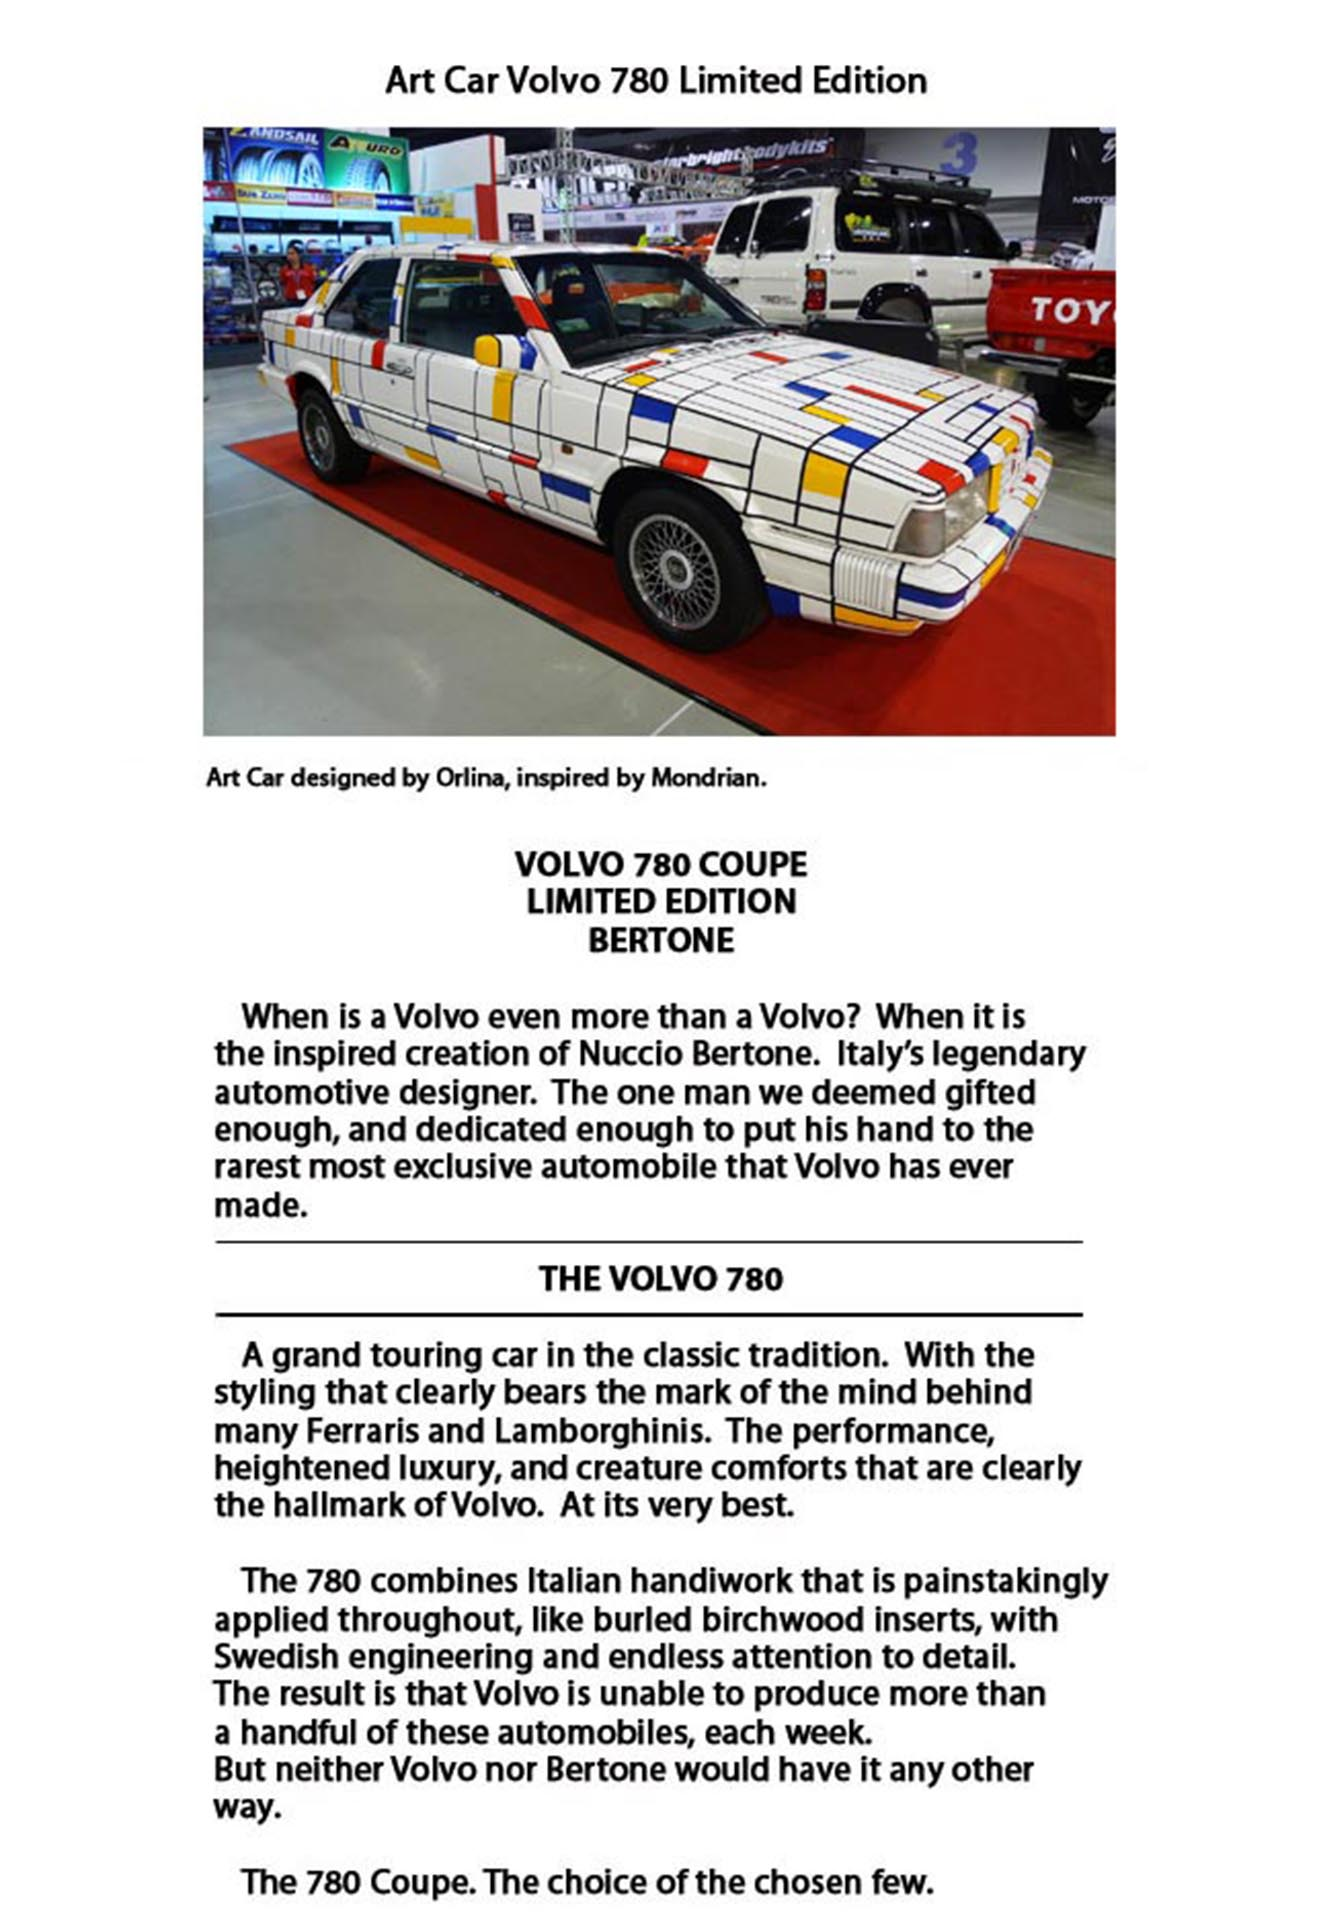 Volvo 780 Mondrian Art Car